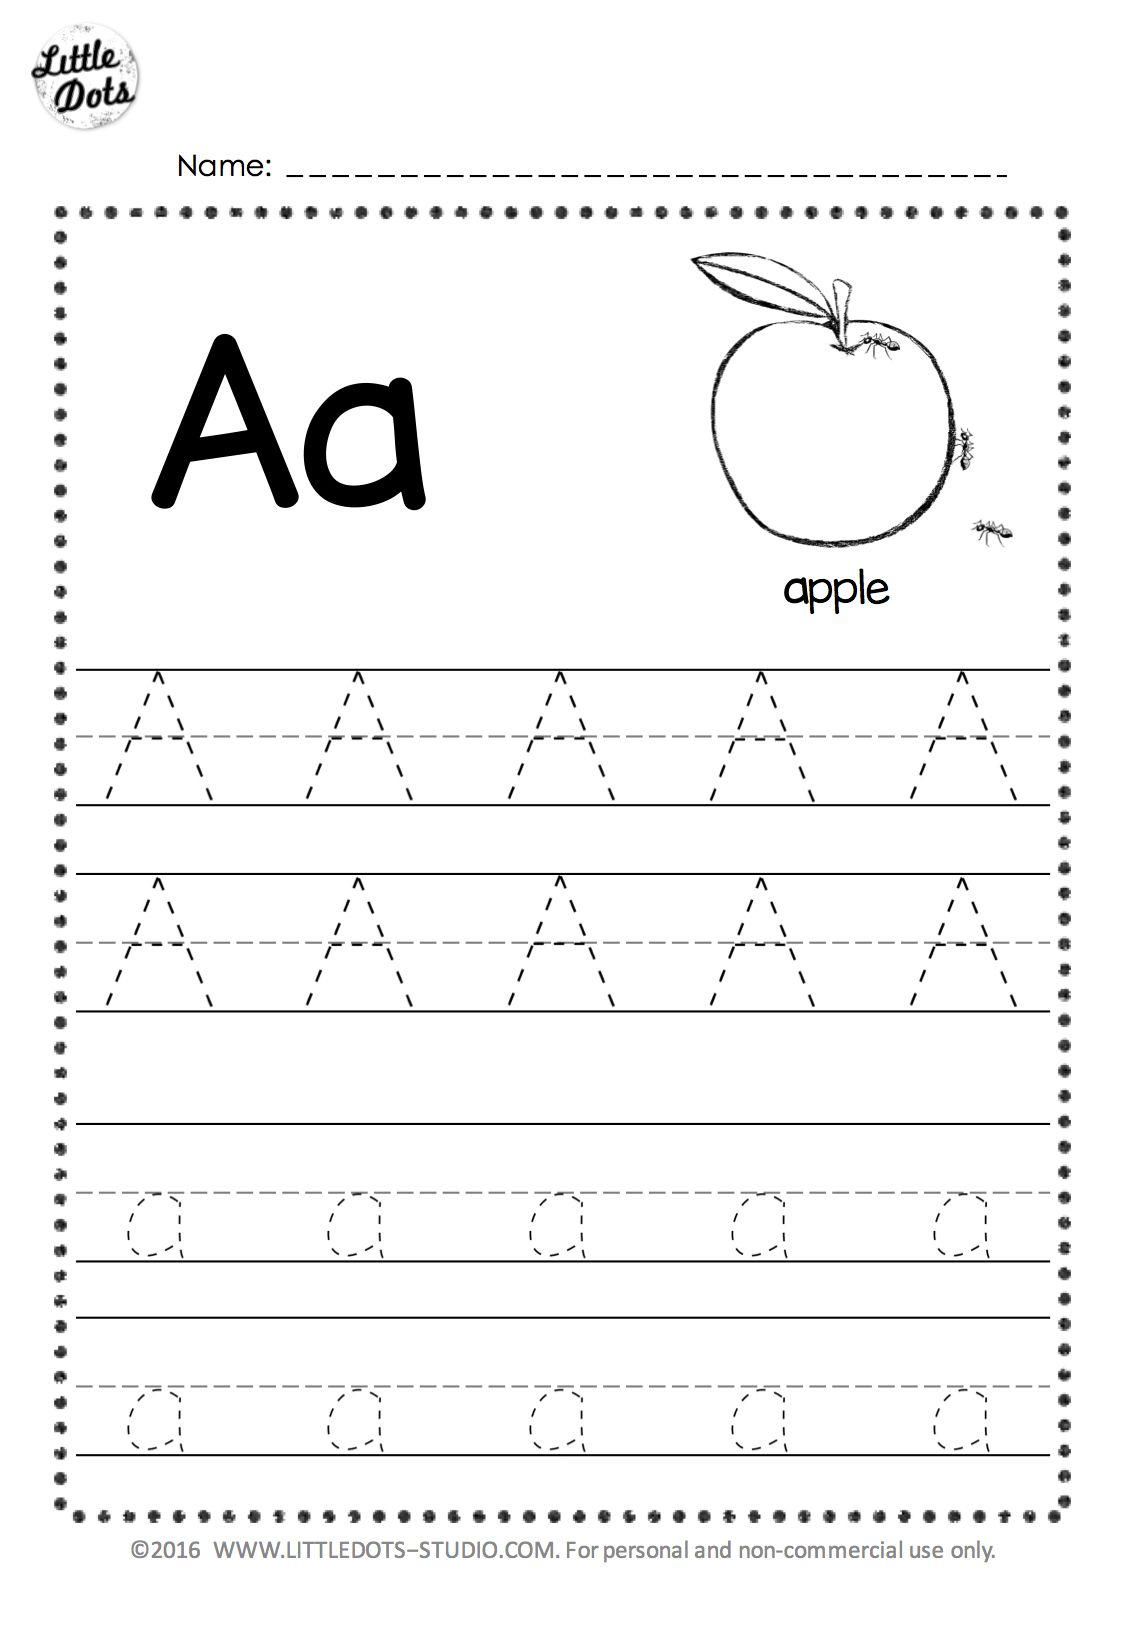 Free Letter A Tracing Worksheets | Tracing Worksheets throughout Alphabet Tracing Download